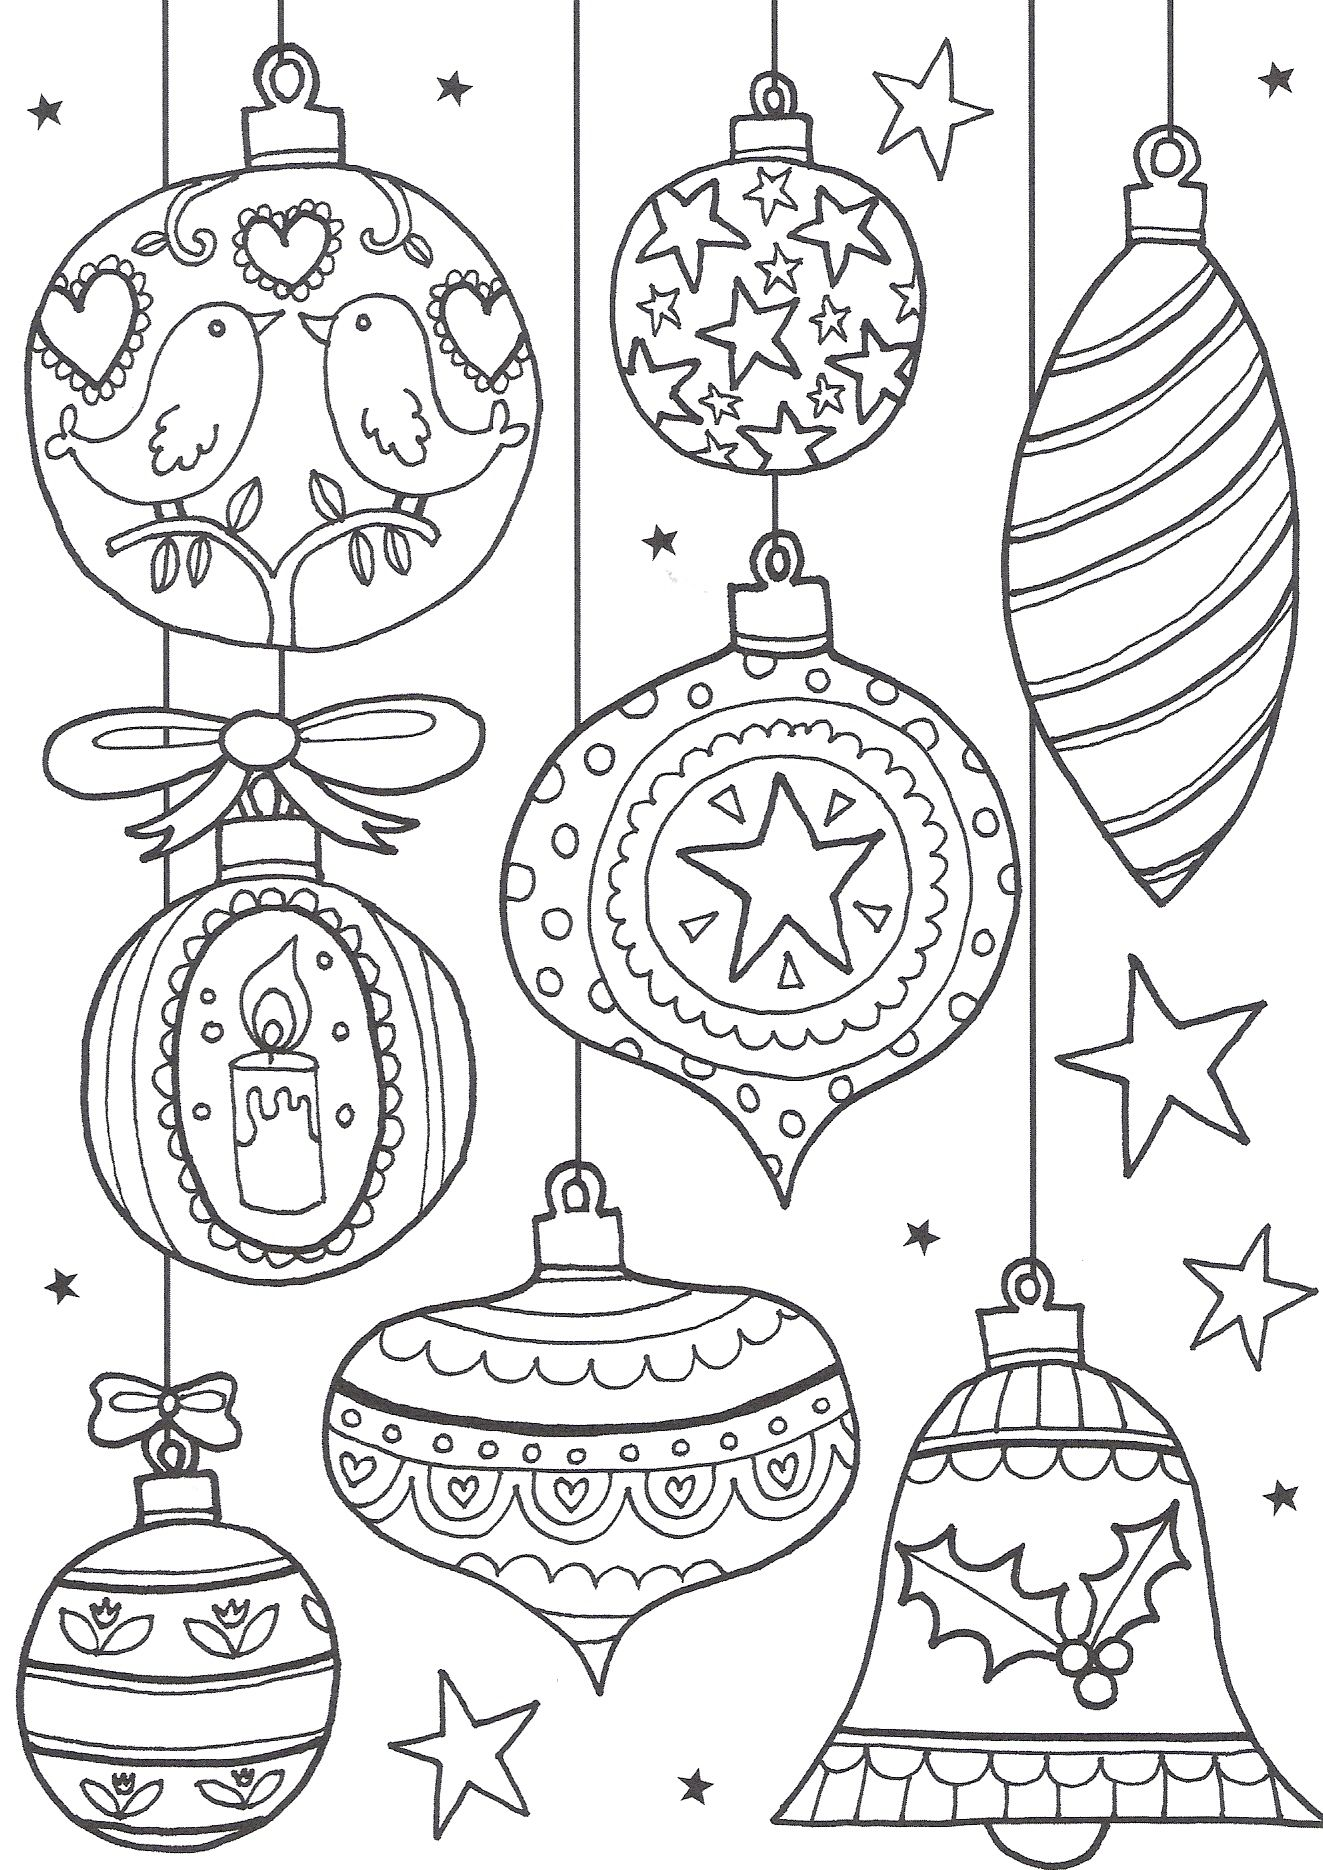 Free Printable Christmas Ornaments Coloring Pages